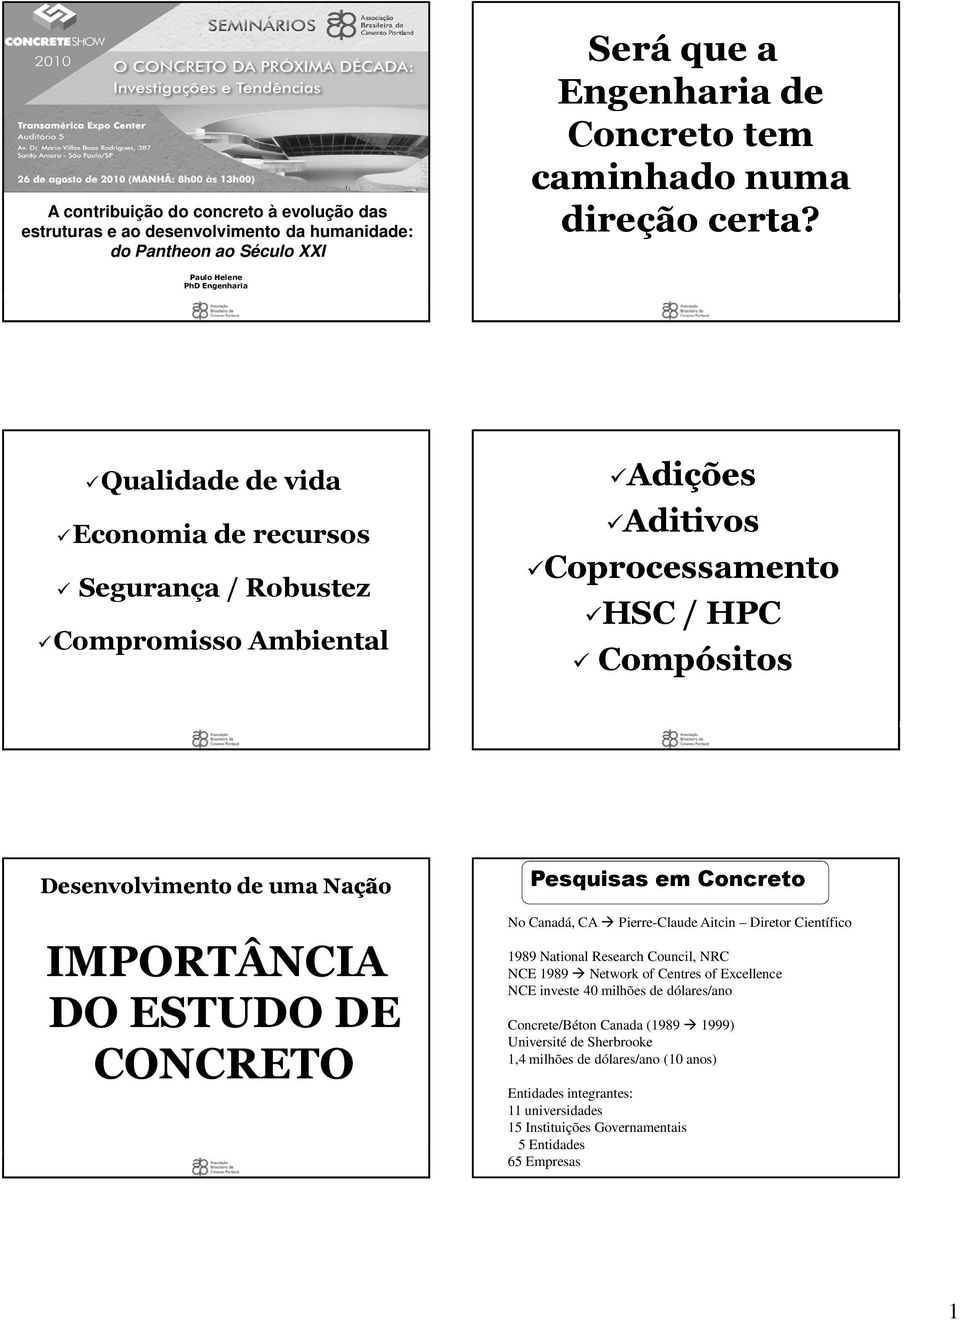 IMPORTÂNCIA DO ESTUDO DE CONCRETO Pesquisas em Concreto No Canadá, CA Pierre-Claude Aitcin Diretor Científico 1989 National Research Council, NRC NCE 1989 Network of Centres of Excellence NCE